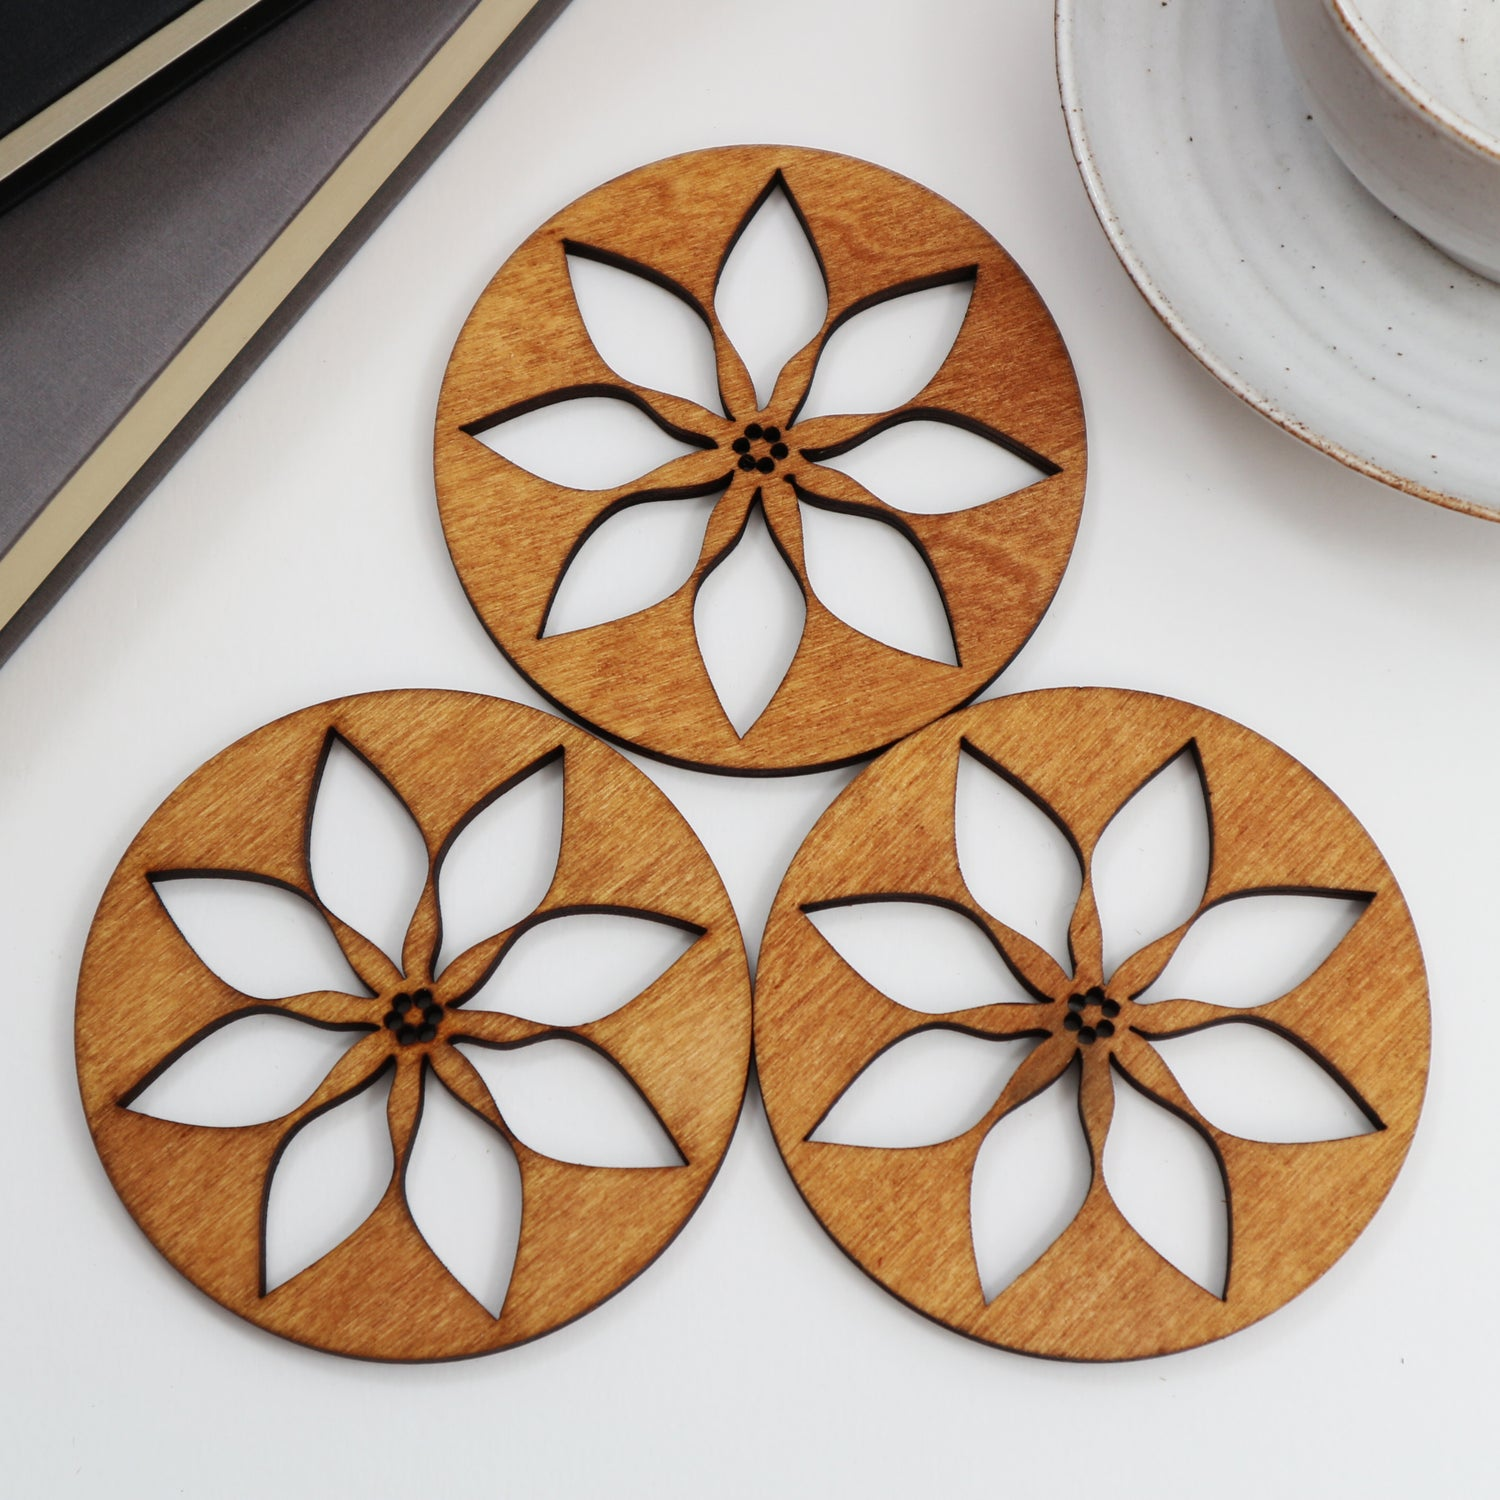 Image of Poinsettia Coasters